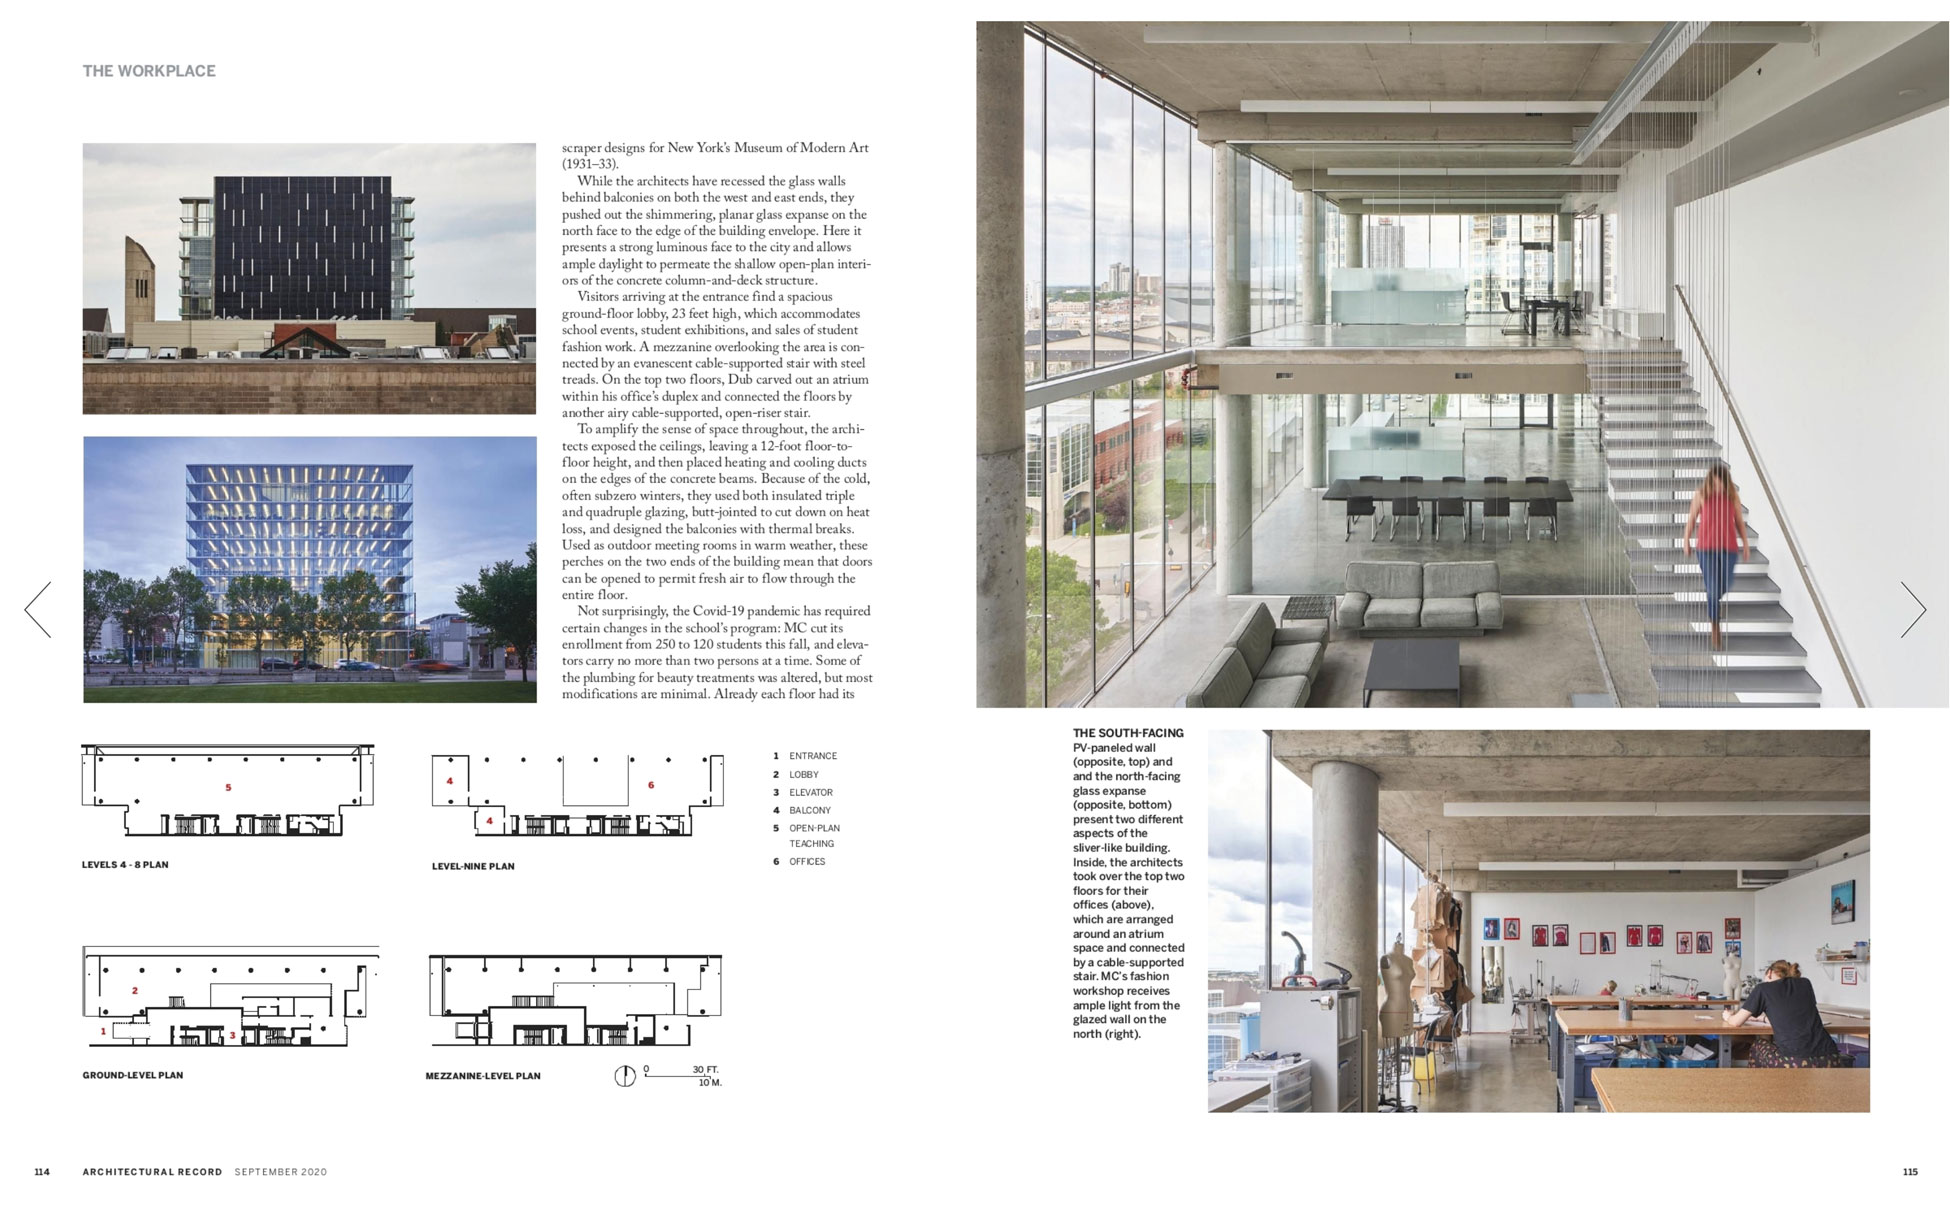 Architectural Record, September 2020- The Edge, Dub Architects